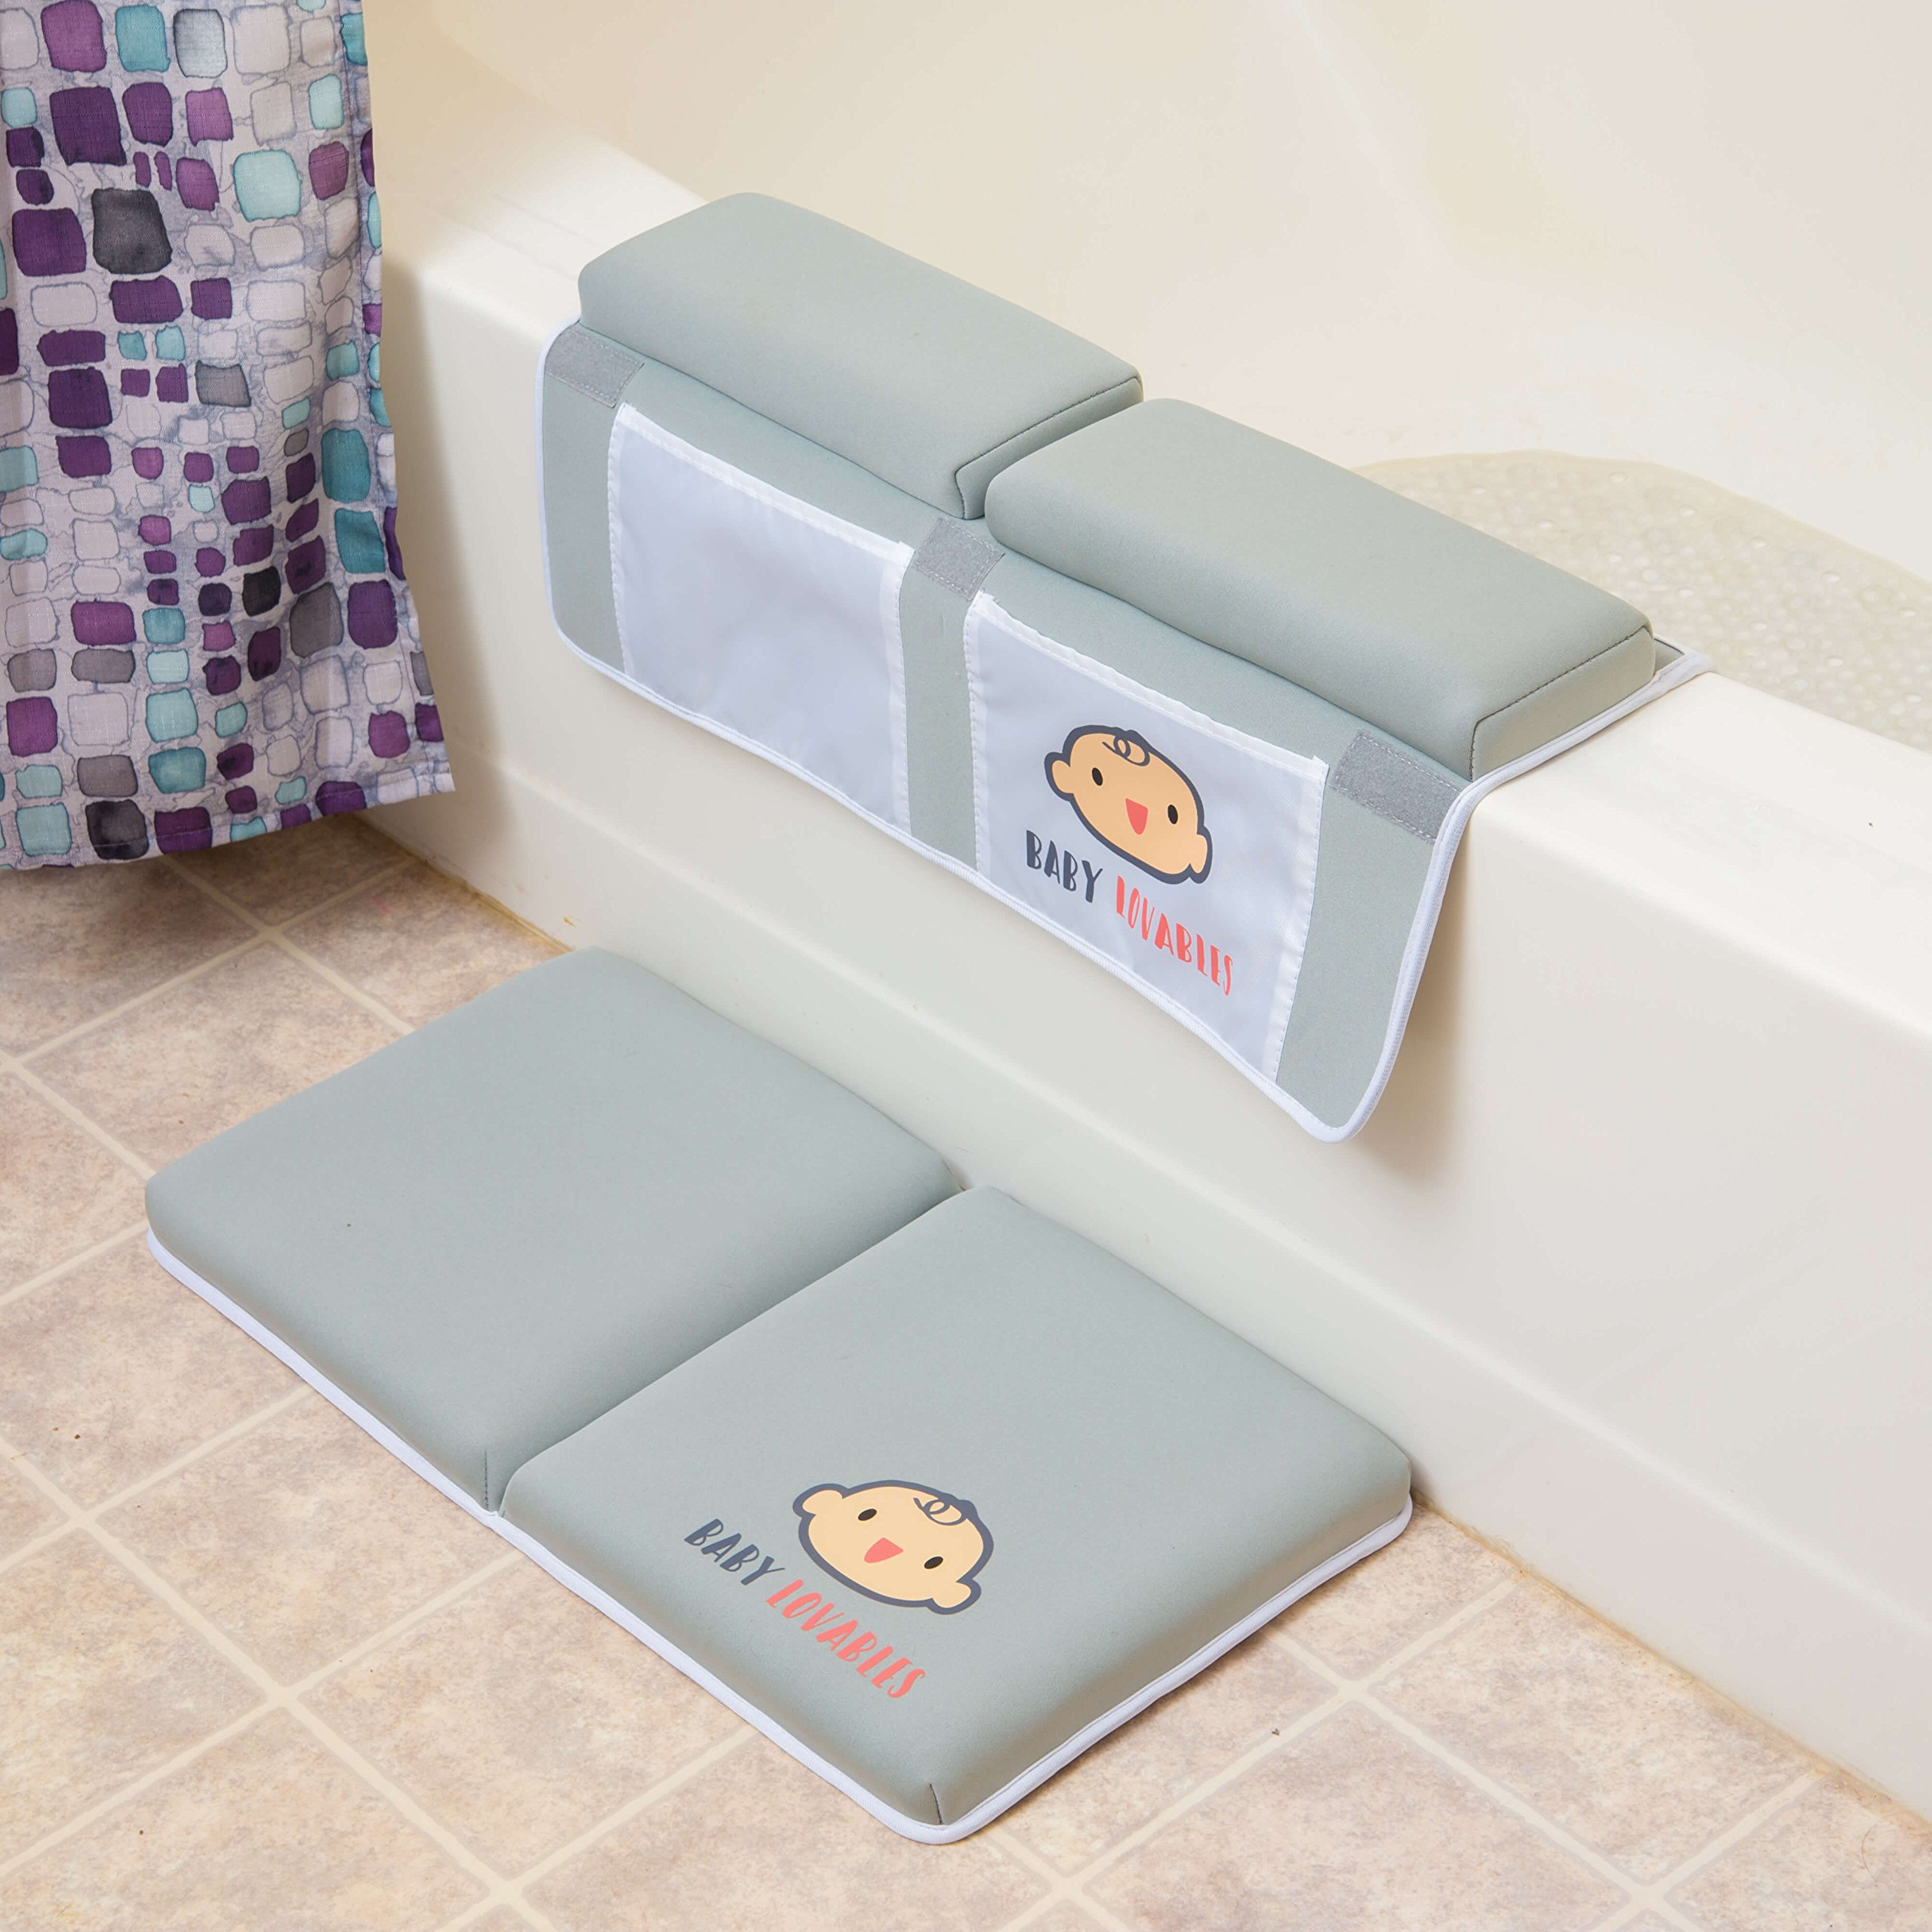 Bath Kneeler with Elbow pad Rest Set- Padded Knee mat for tub Bathing and Bathroom time. Bathtub Kneeling Waterproof Cushion mats for Infant or Baby Toy Accessories. Bathtime Knee Saver. Shower Gift. by BABY LOVABLES (Image #9)